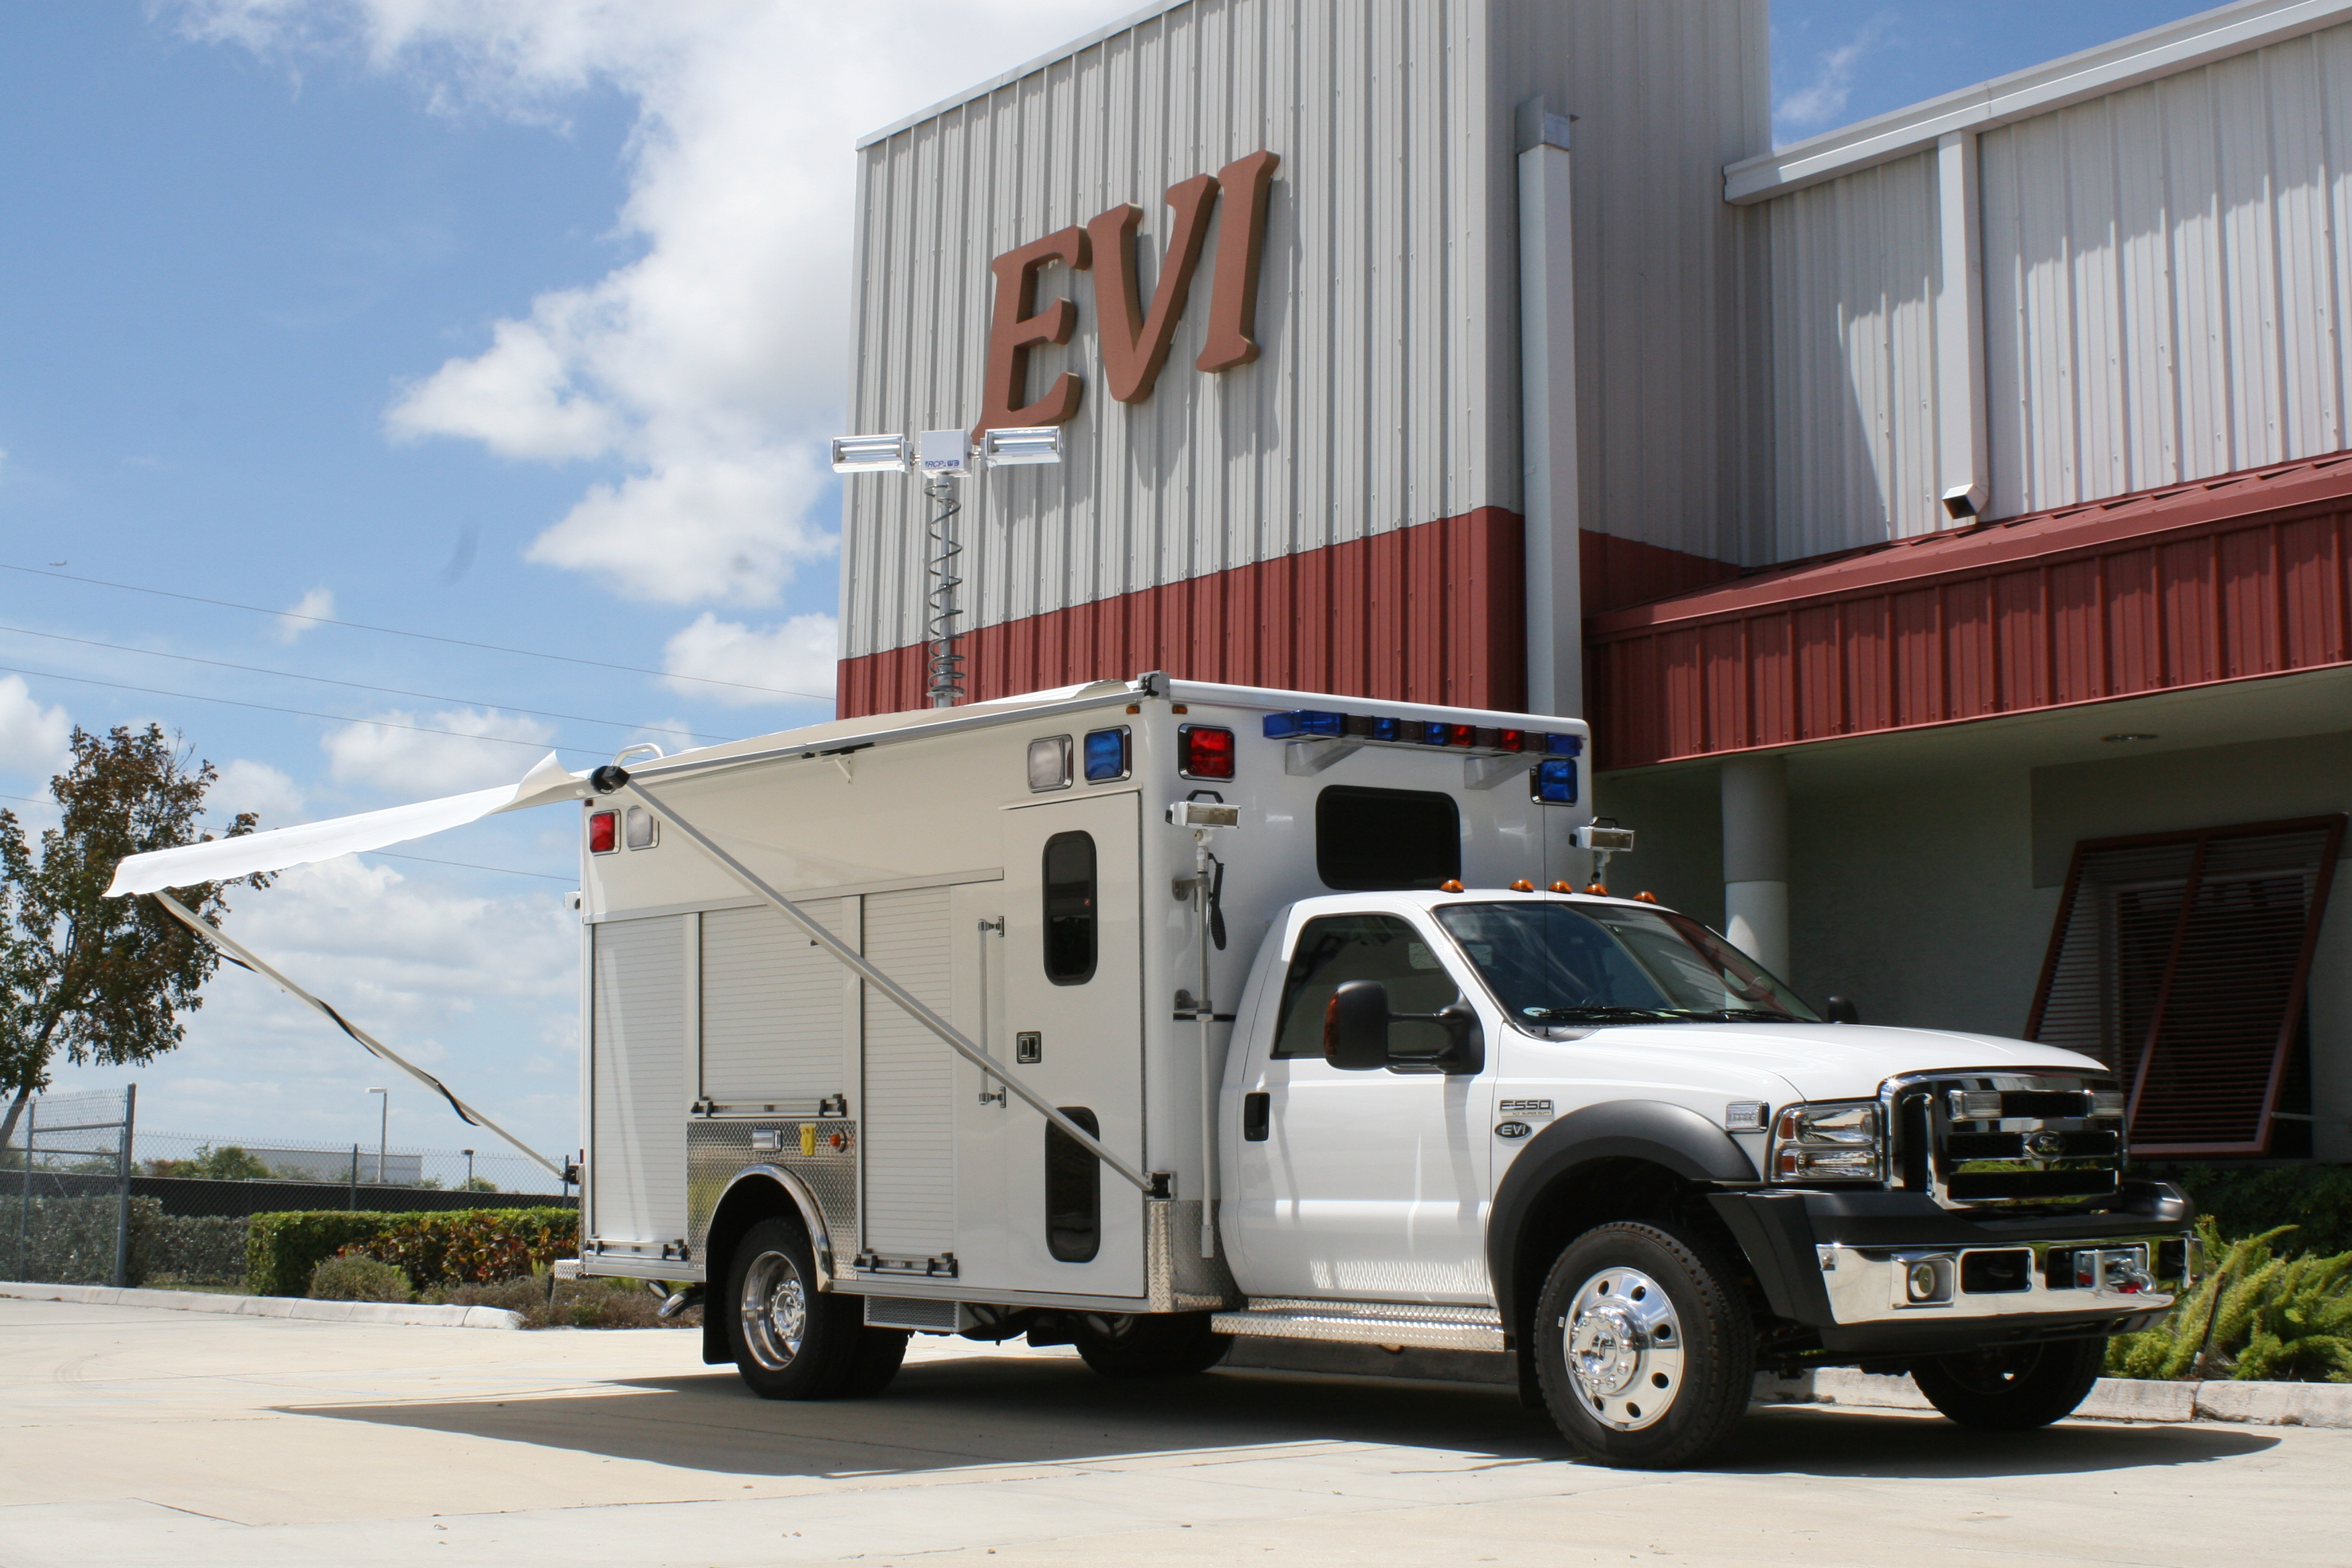 EVI 14-Ft Crew Body Haz-Mat Vehicle